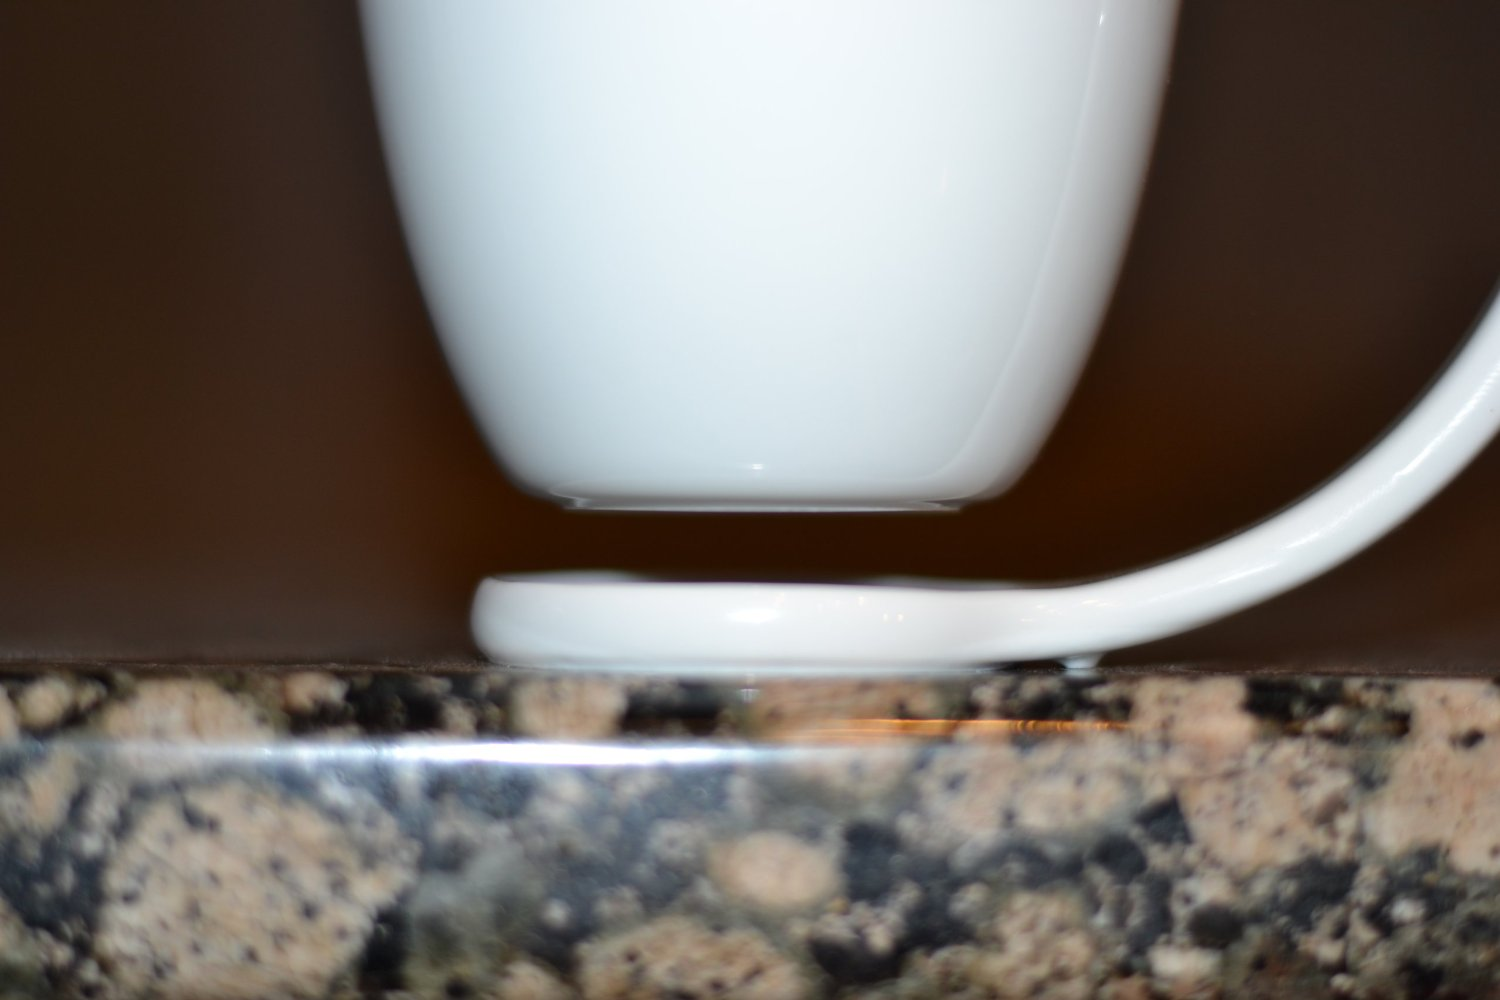 Floating Coffee Mug Close Up